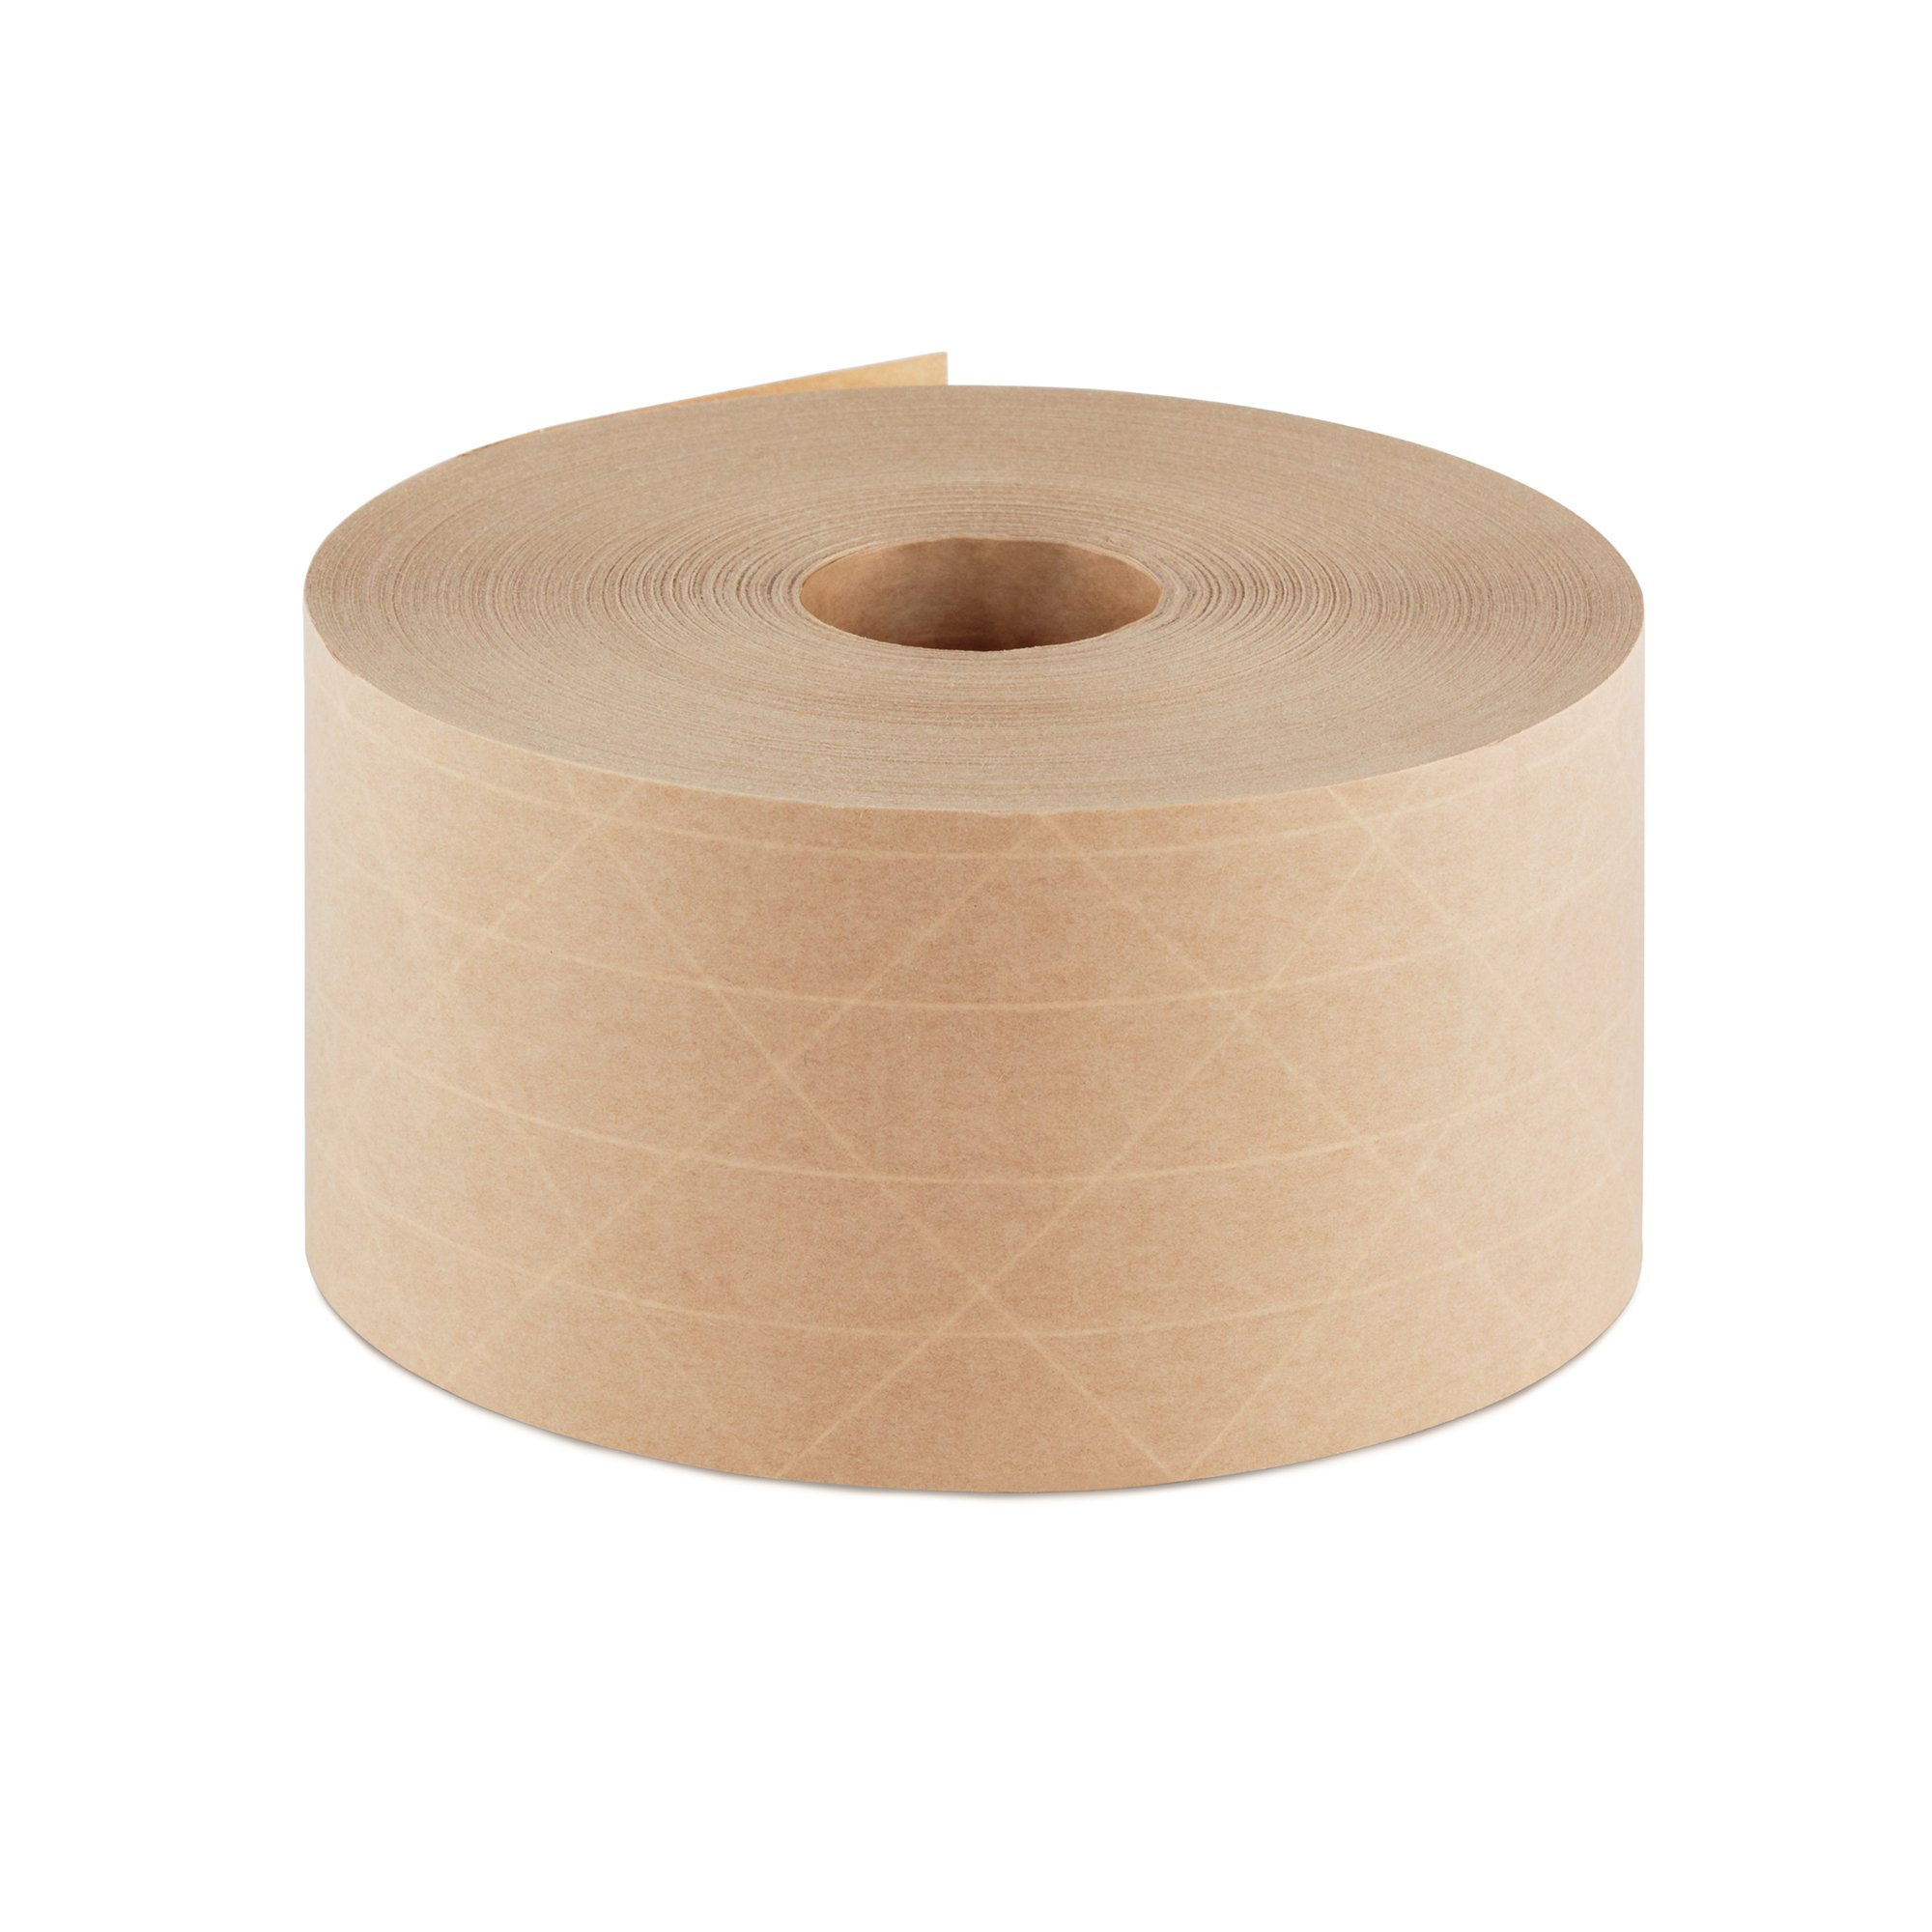 Crowell Reinforced Gummed Kraft Paper Tape, Intertape Super Seal Natural 70mm (2.75 inches) x 375 Feet Roll - Commercial use for Box Packaging and Sealing Commercial Quality #233